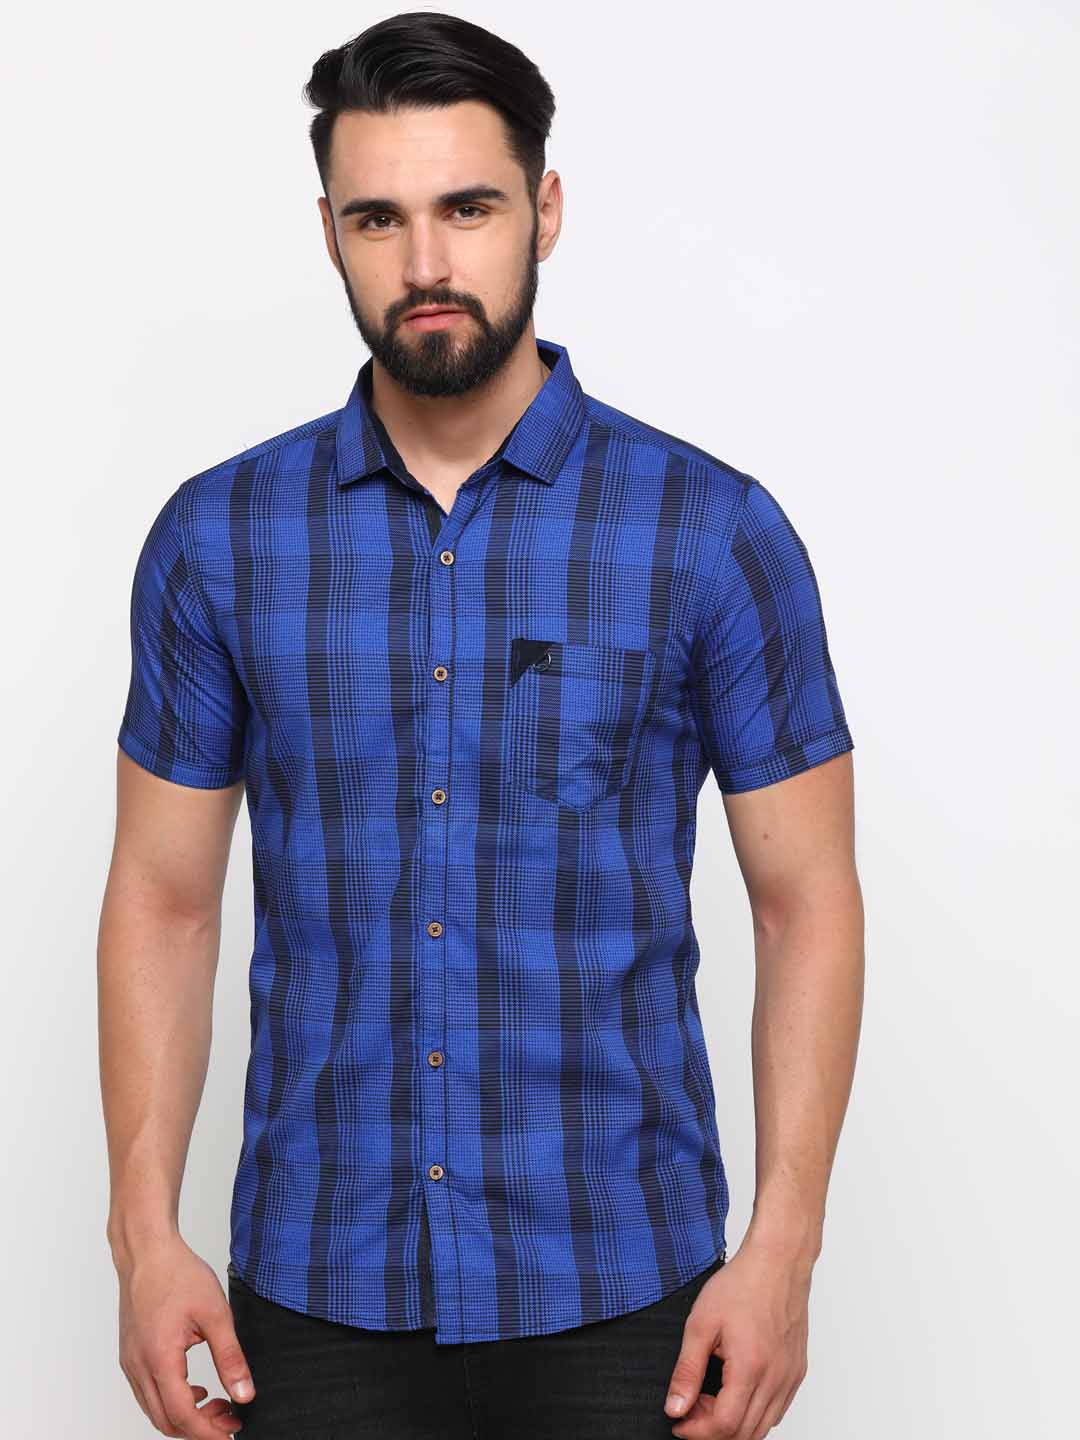 With | WITH Men's Blue Cotton Checks SlimFit Shirt